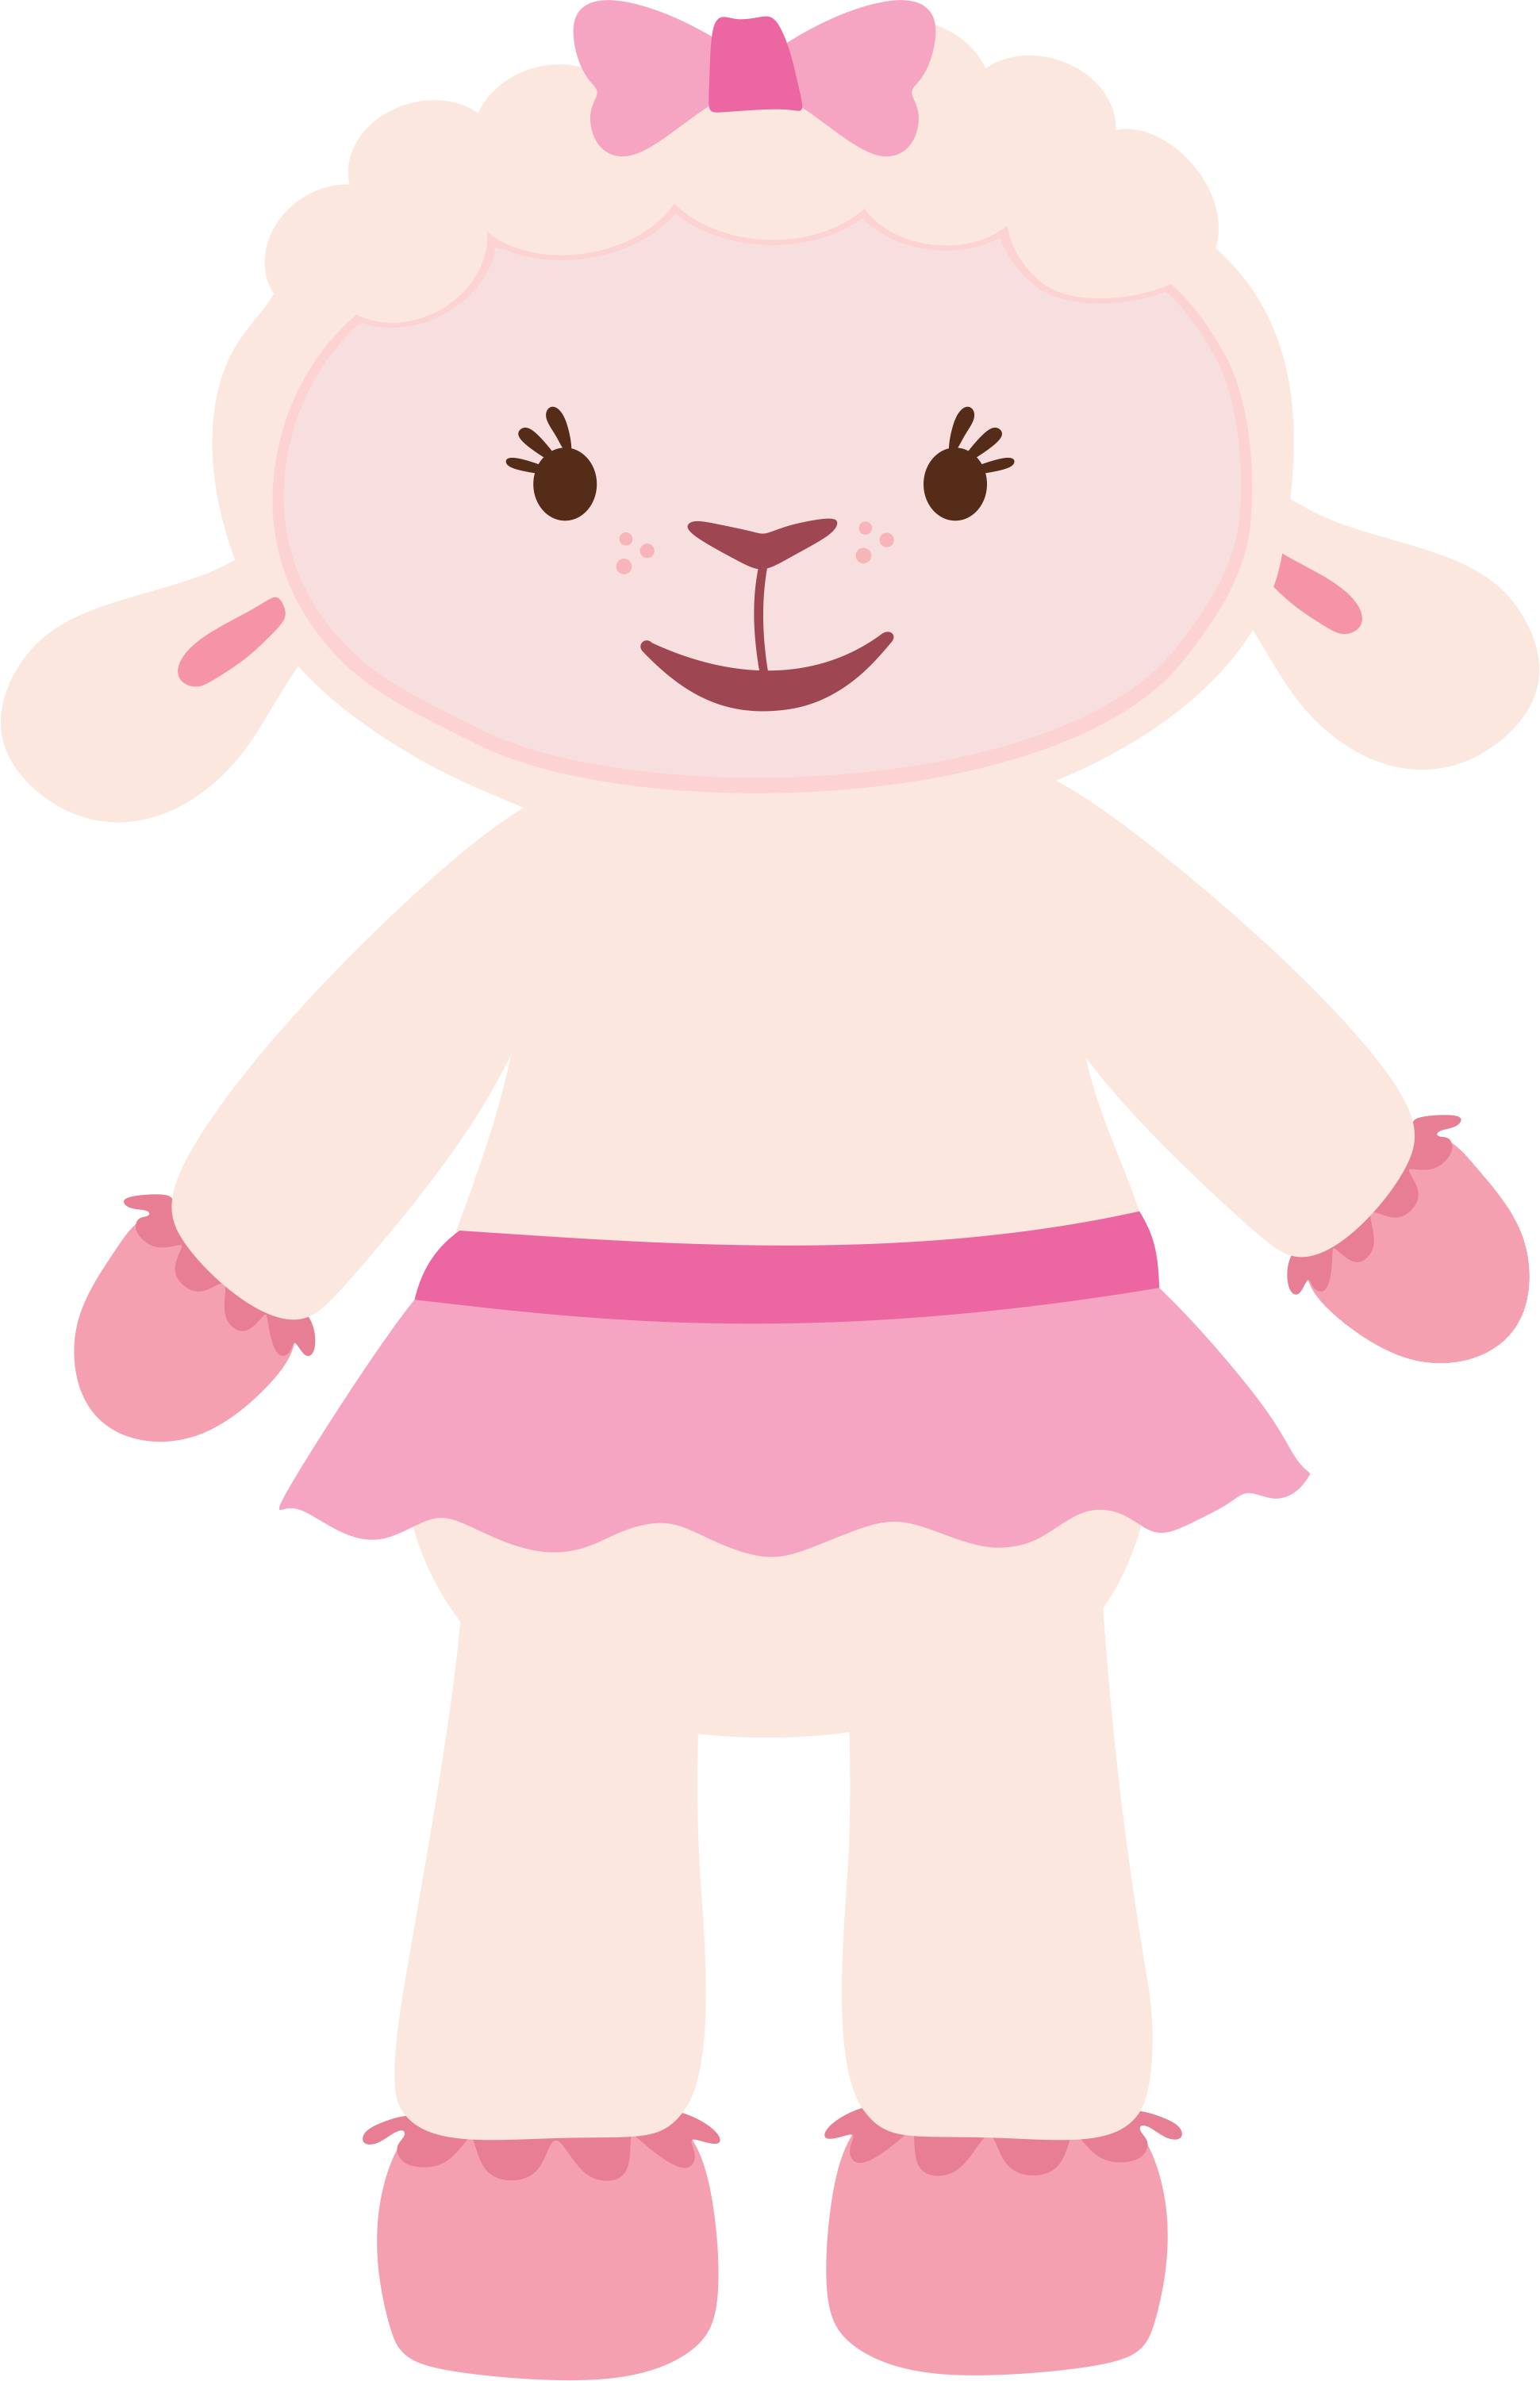 Ibtzwlfe axnyx png lambie. Circus clipart stall